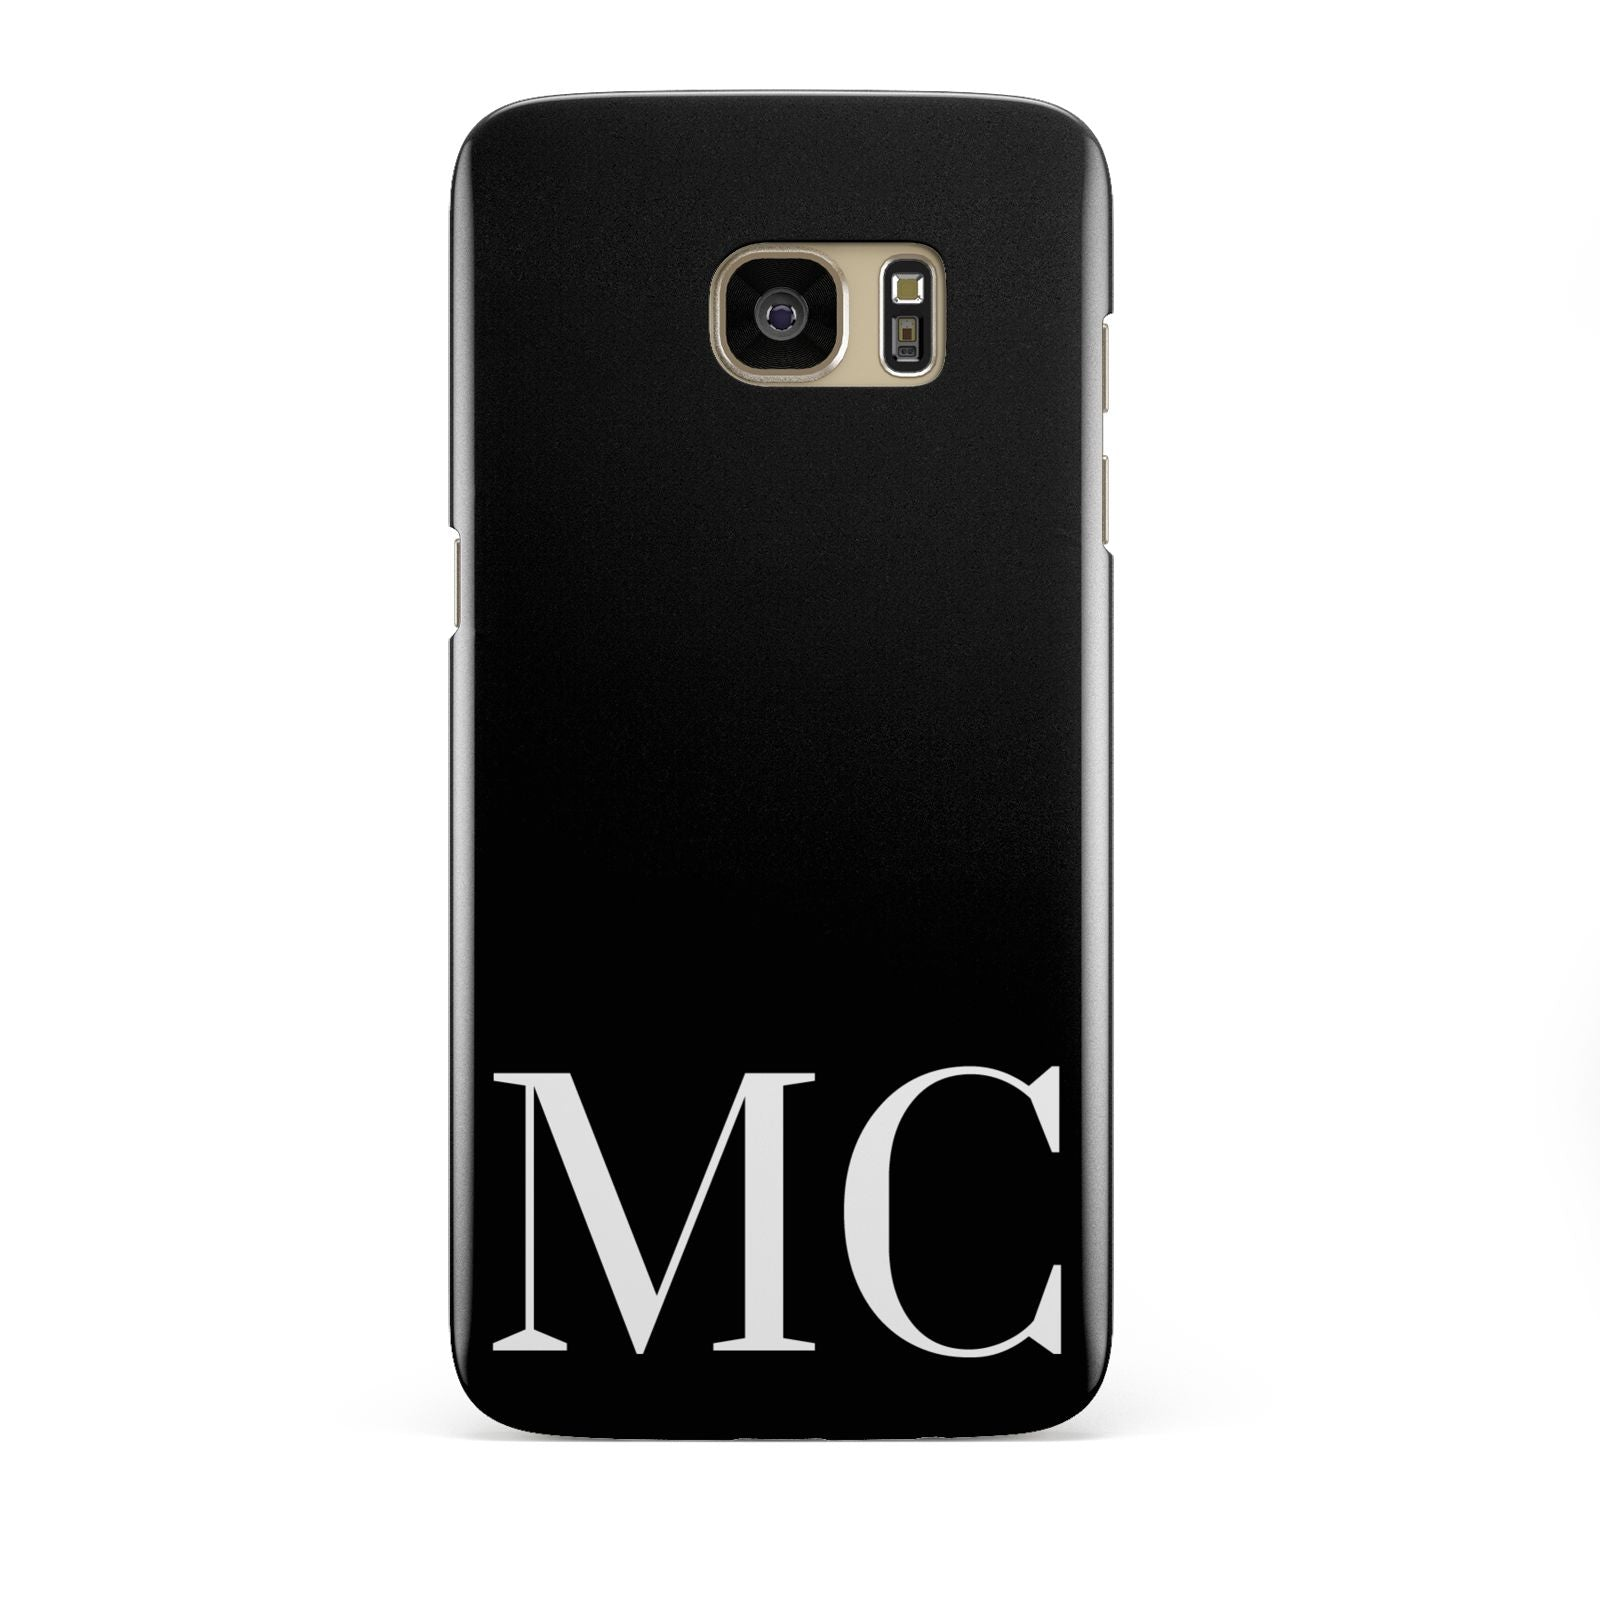 Initials Personalised 1 Samsung Galaxy S7 Edge Case